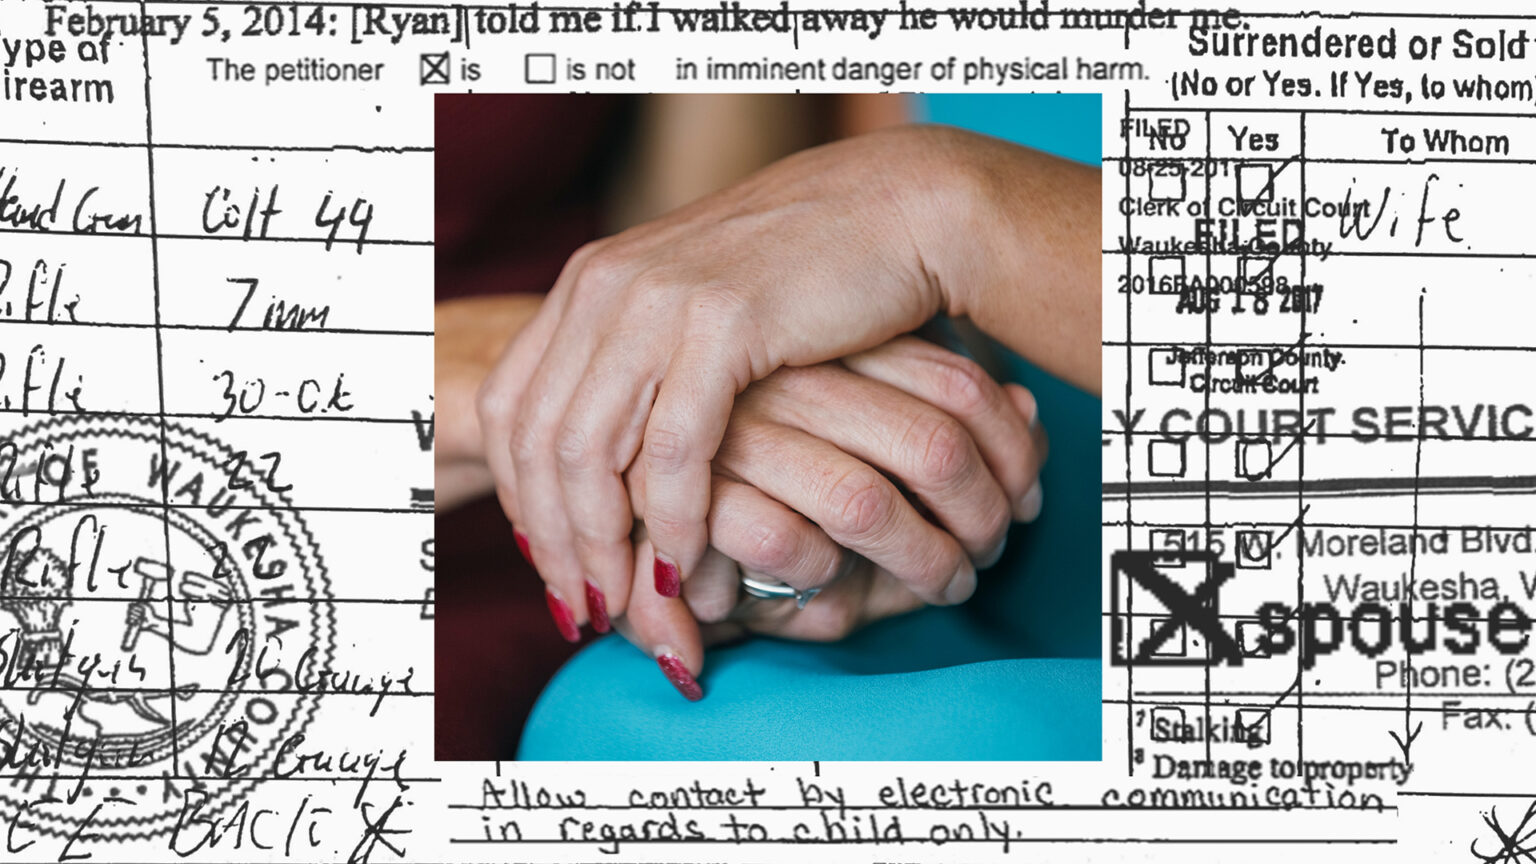 An illustration showing a photo of two women holding hands superimposed on legal documentation about spousal abuse.